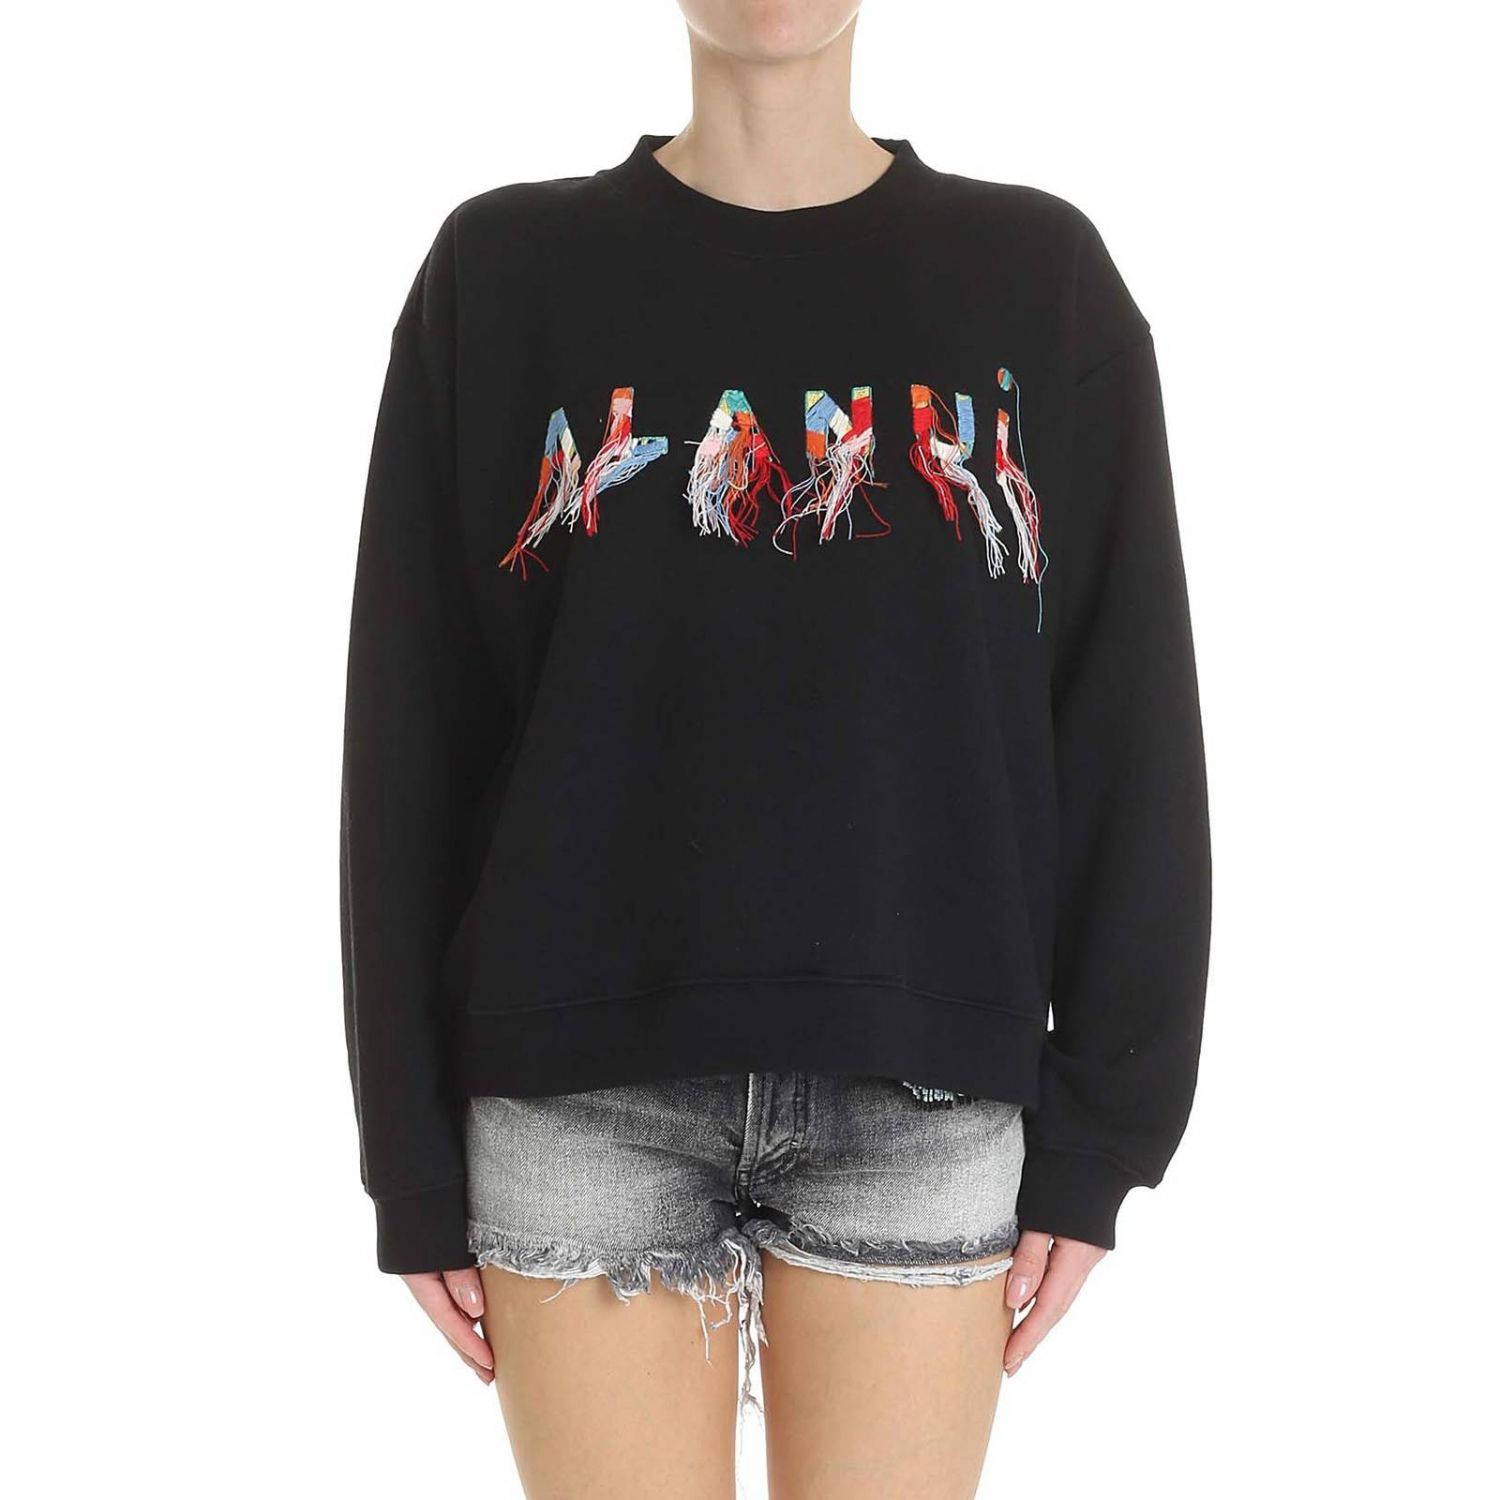 Sweat-shirt Alanui: Sweat-shirt femme Alanui noir 1